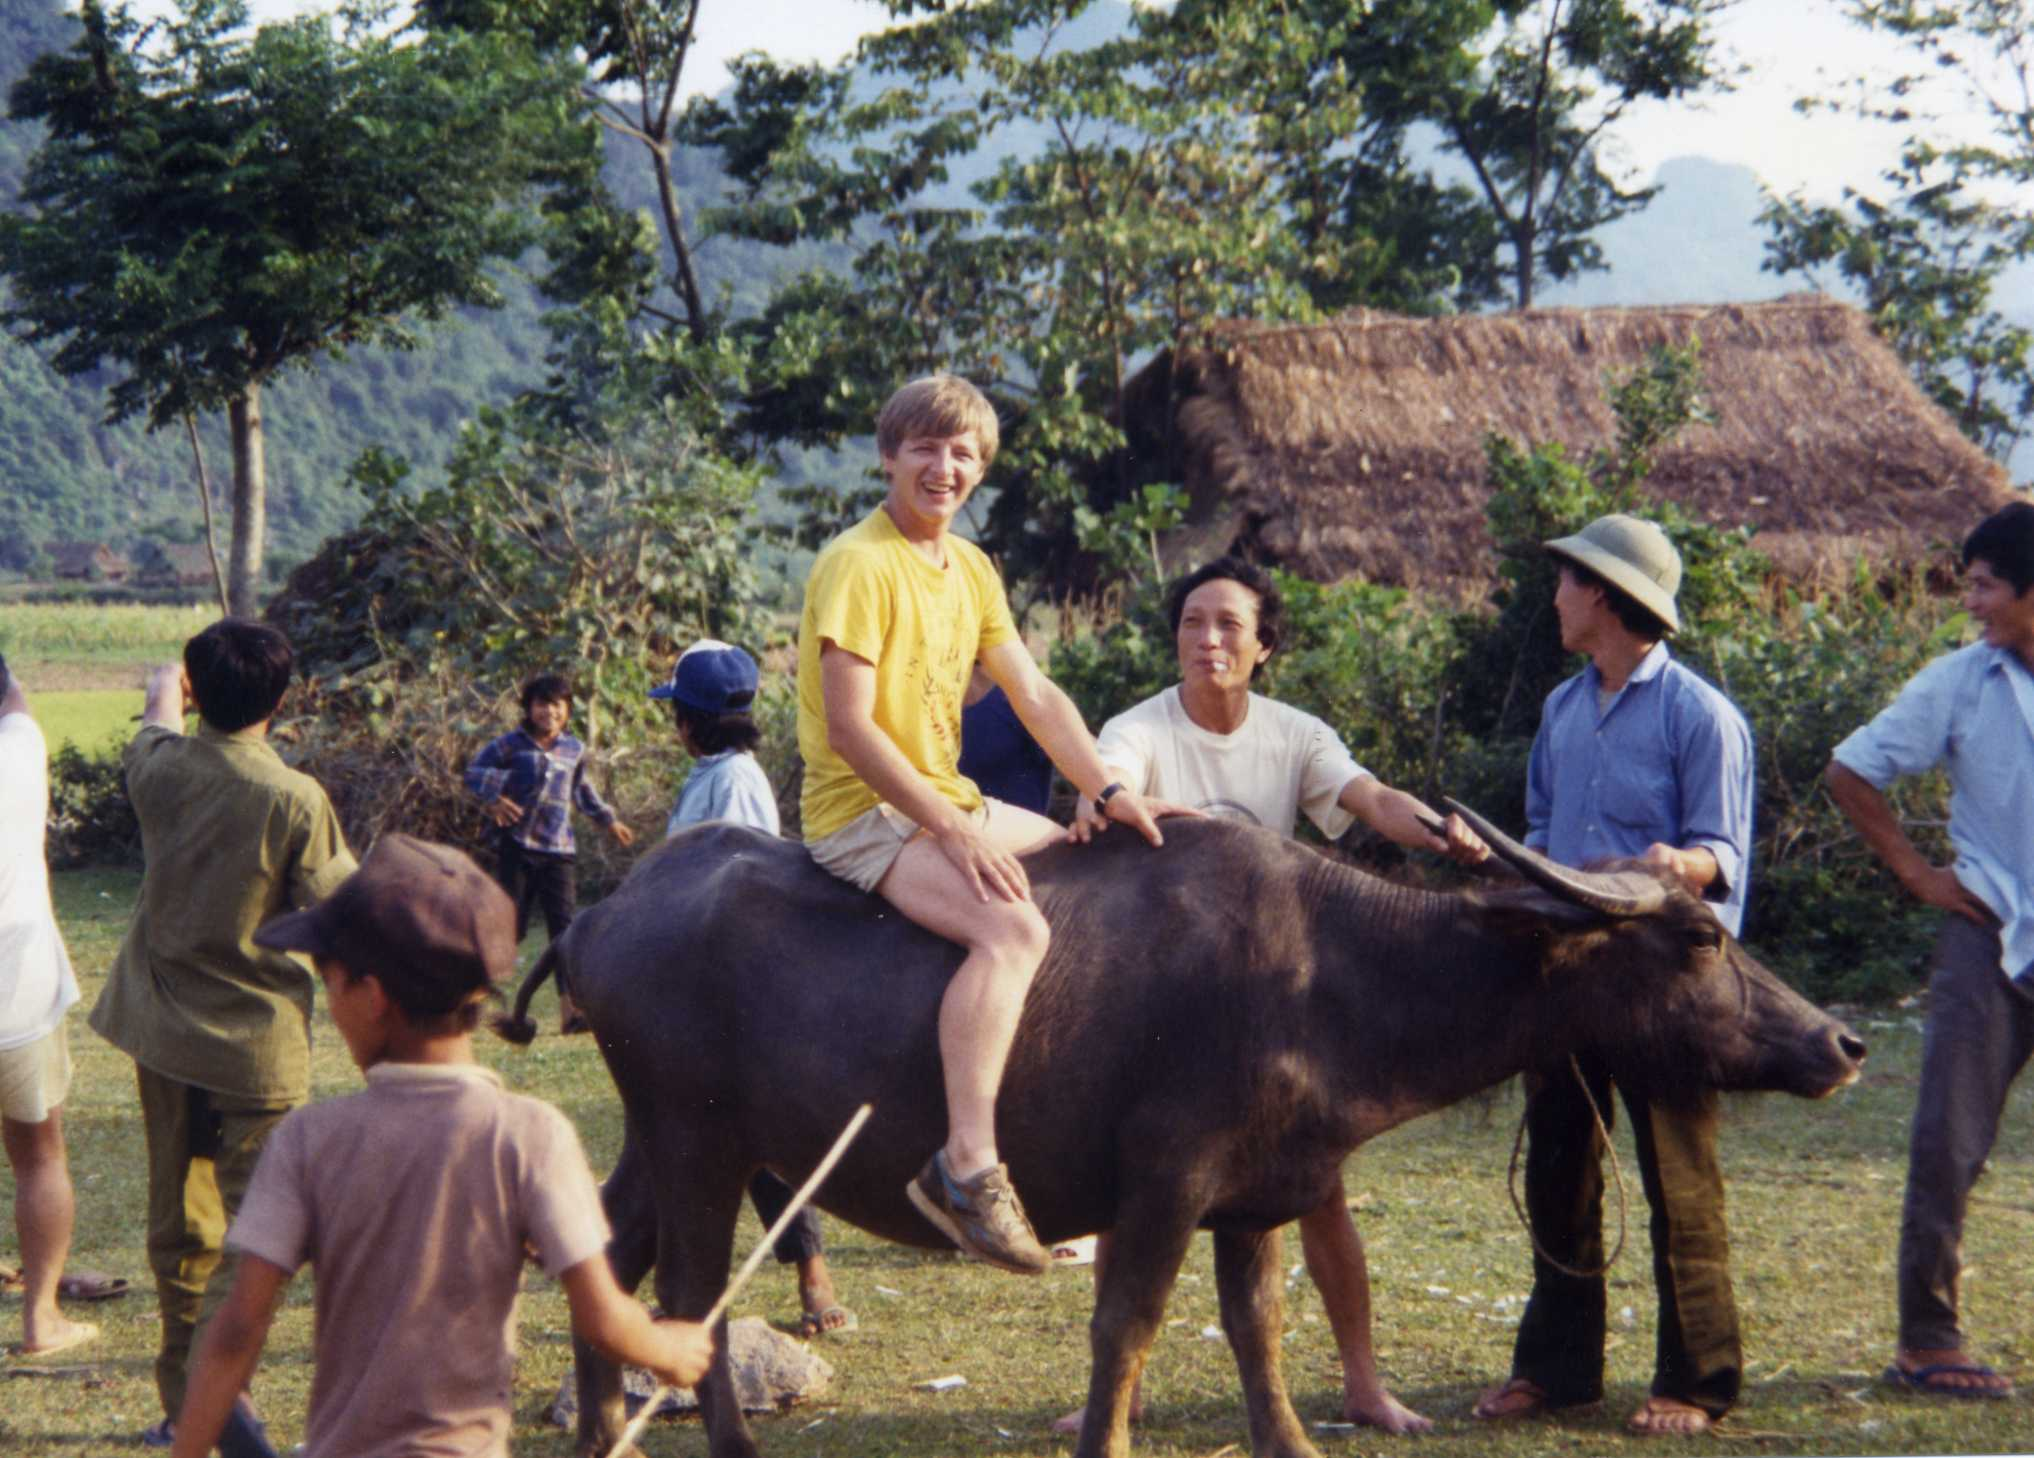 British cave expert linked to Son Doong discovery relives 30 years of devotion to Vietnam